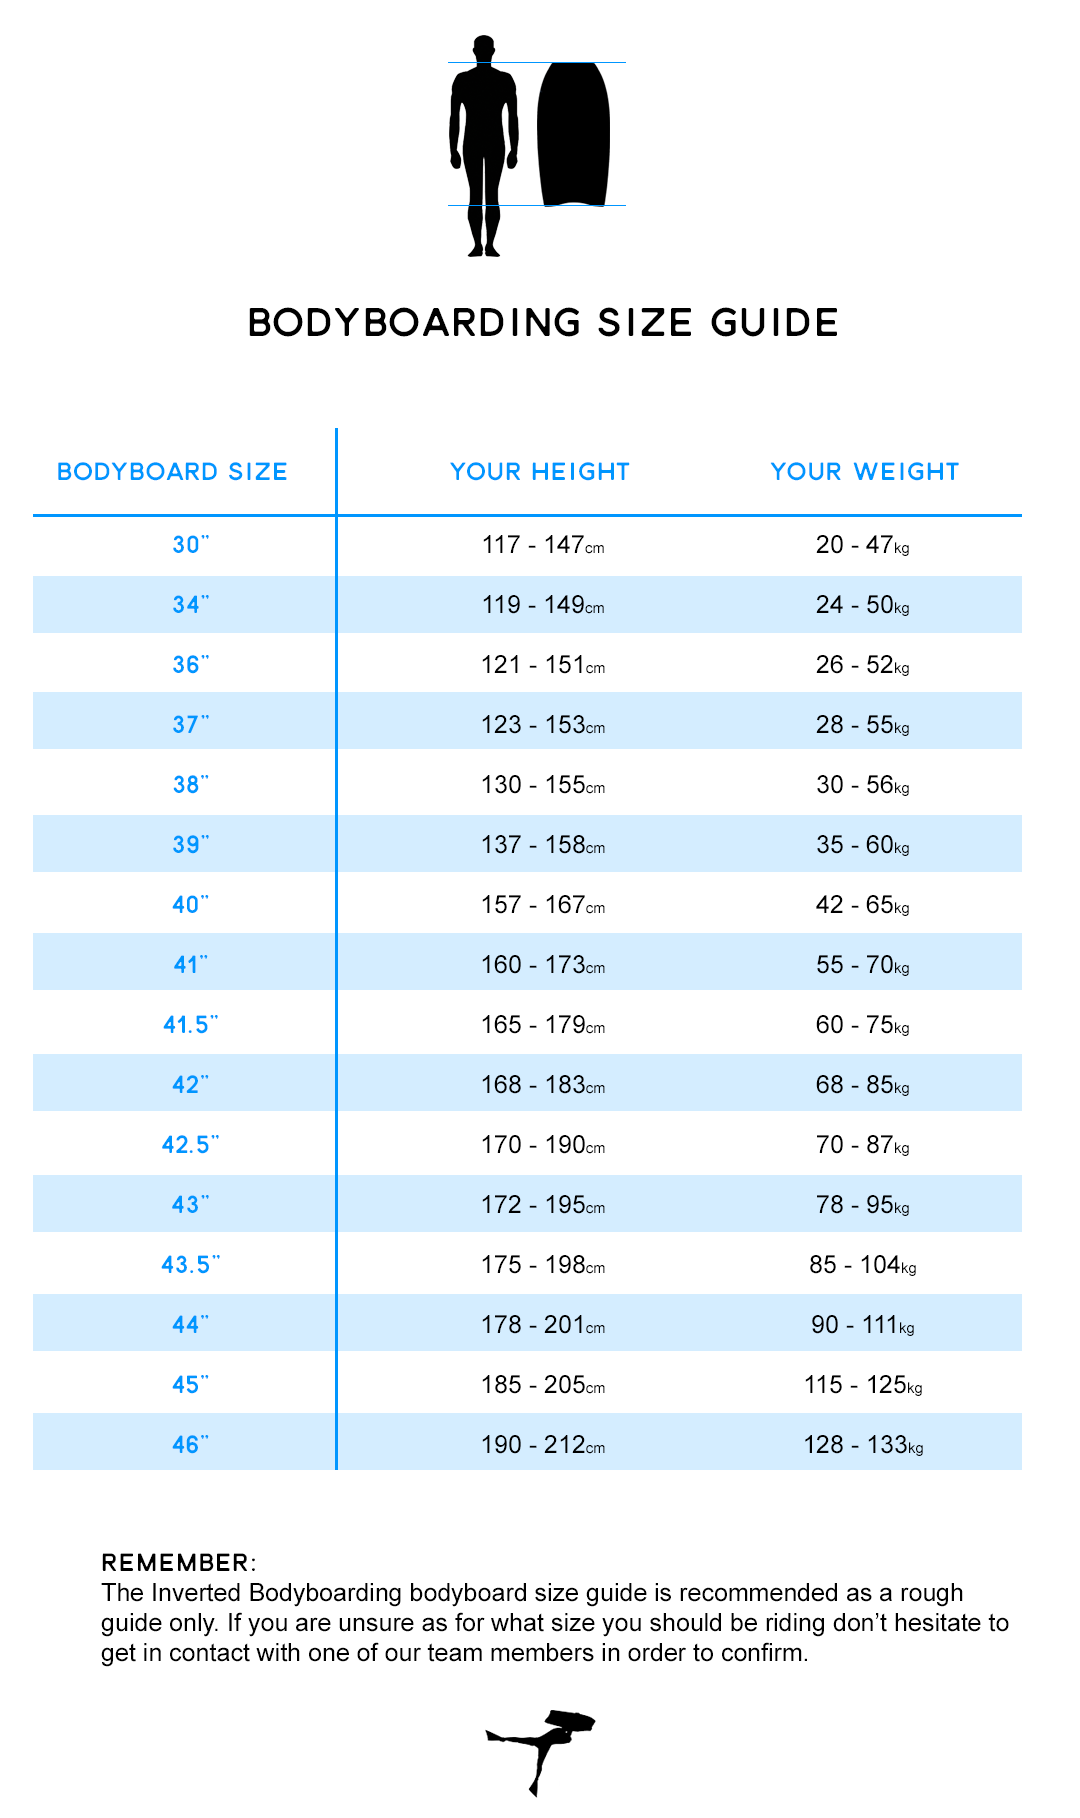 Bodyboard Size guide at Inverted Bodyboarding